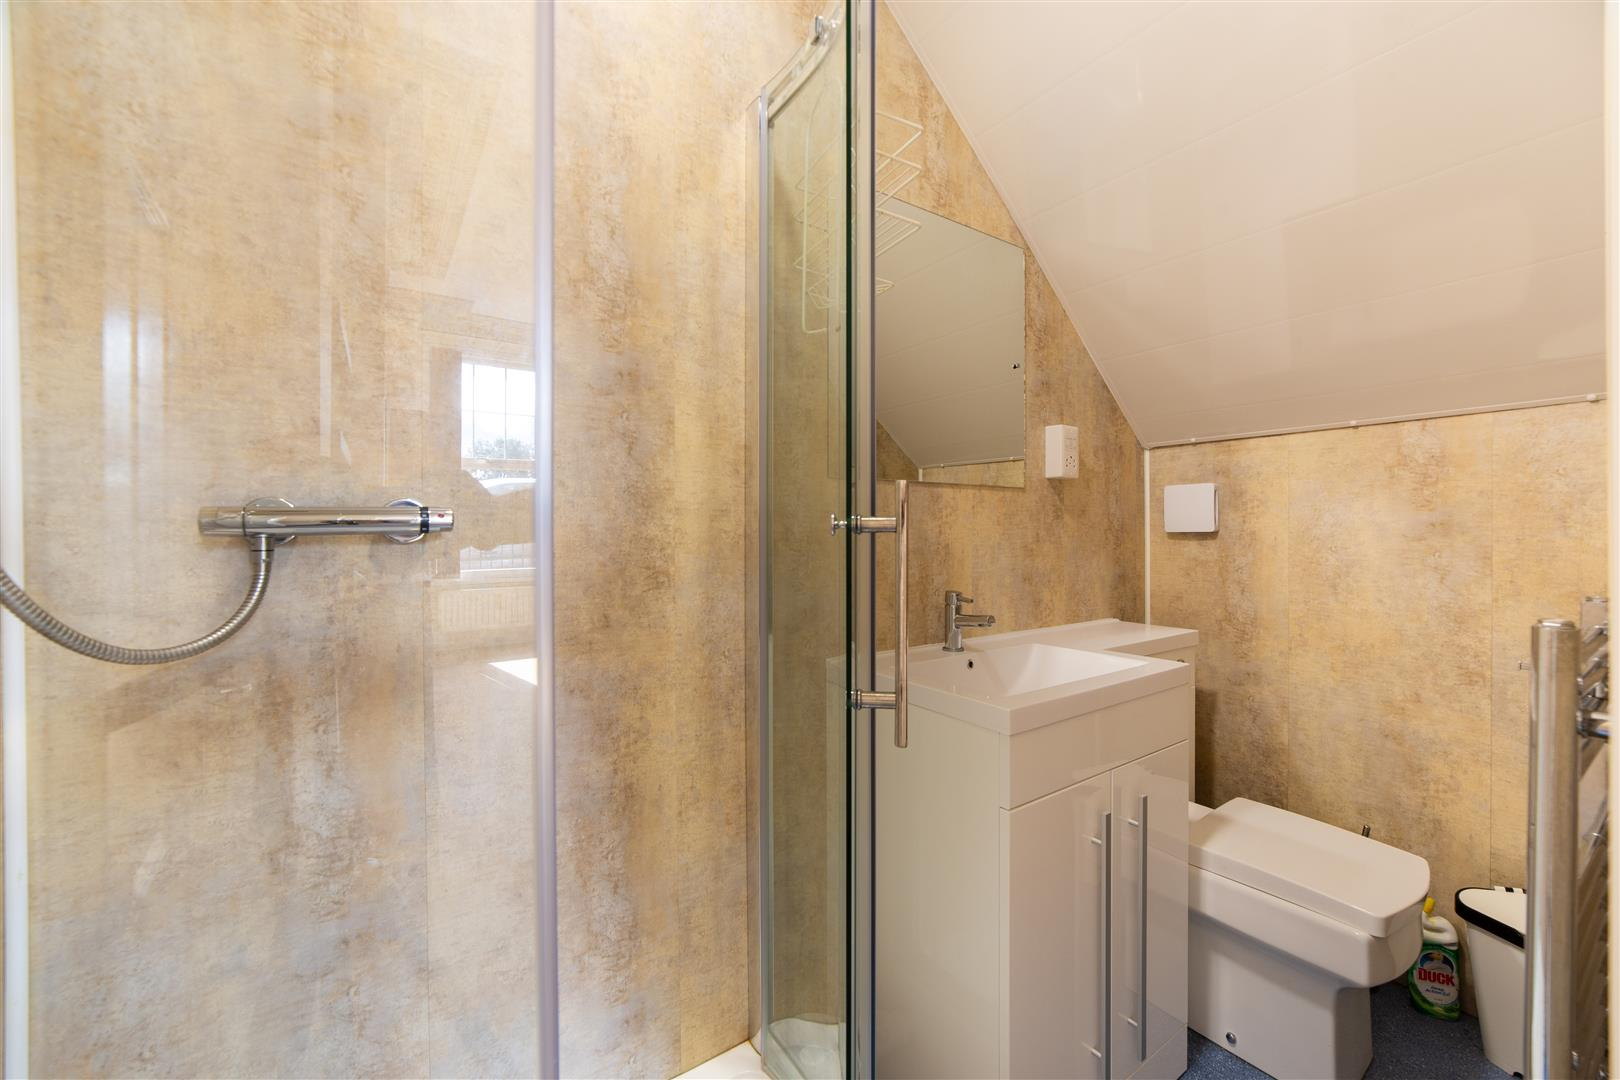 8 bed terraced house to rent in Newcastle Upon Tyne, NE2 1JS  - Property Image 16